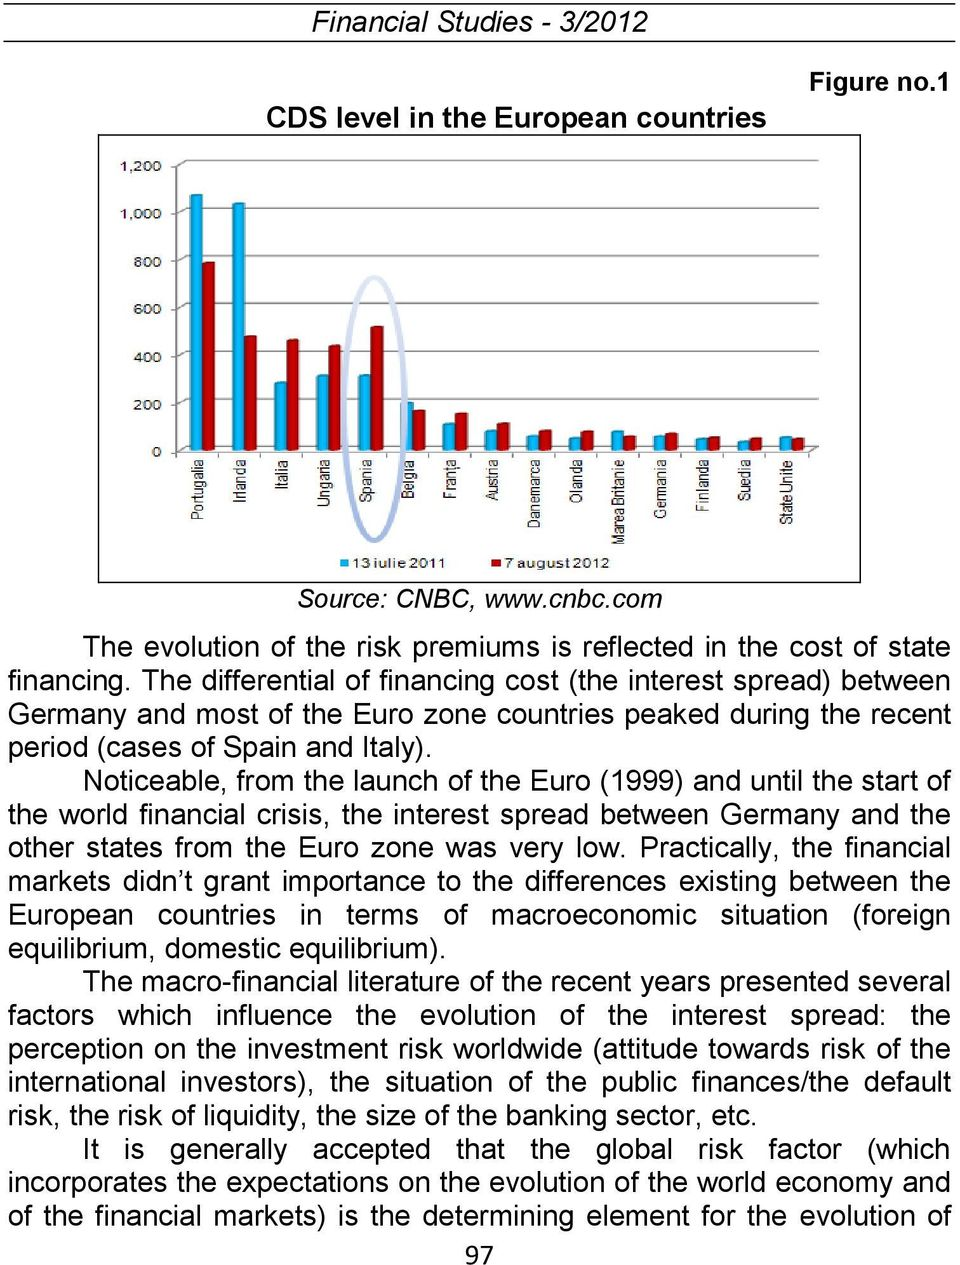 Noticeable, from the launch of the Euro (1999) and until the start of the world financial crisis, the interest spread between Germany and the other states from the Euro zone was very low.